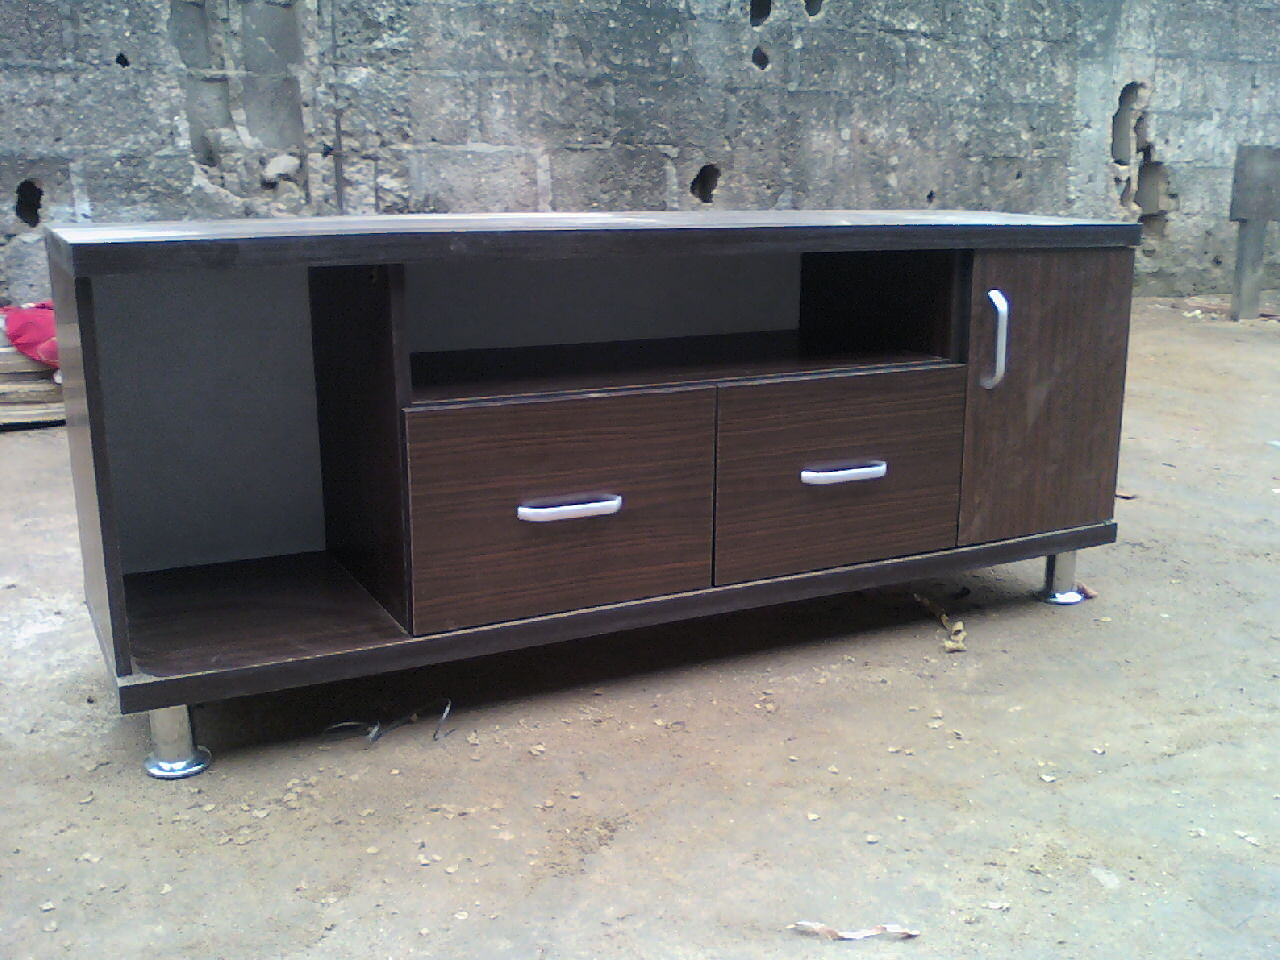 Extraordinary affordable furniture photos inspirations for Affordable furniture number